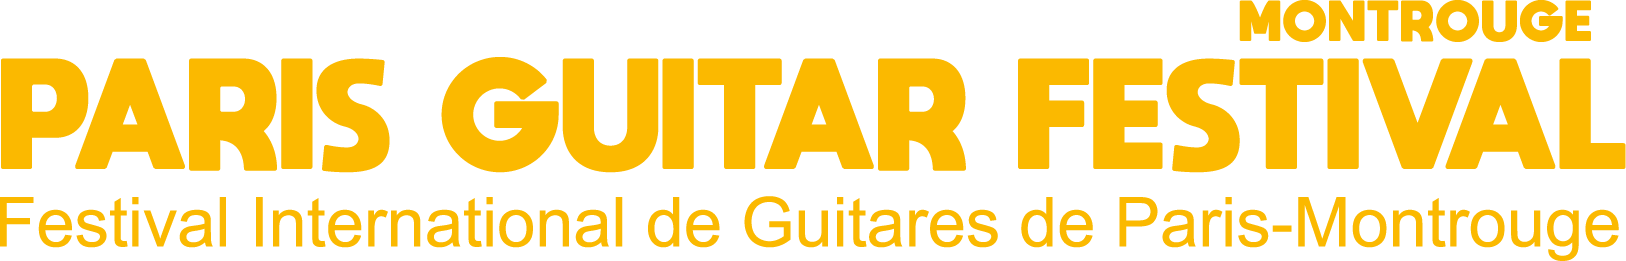 Paris Guitar Festival